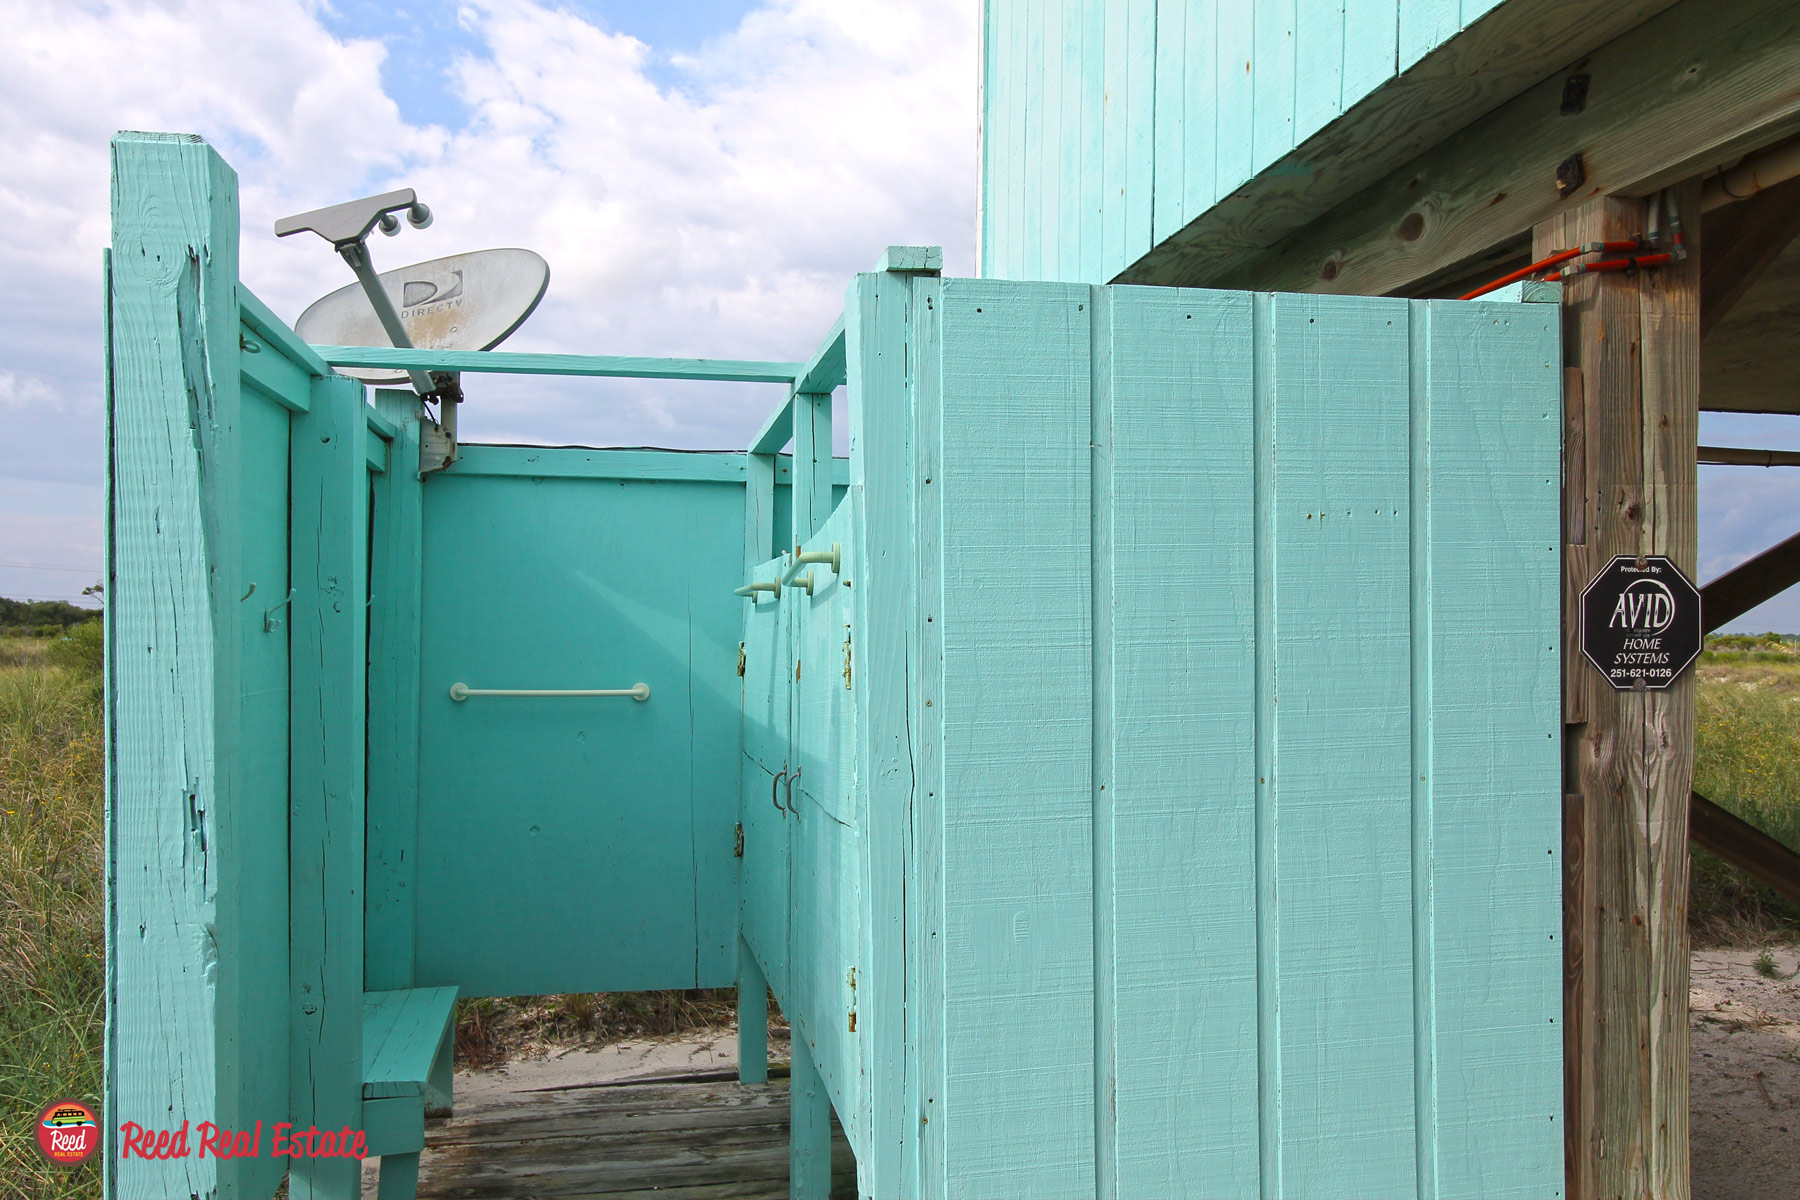 Outdoor shower with 2 stalls